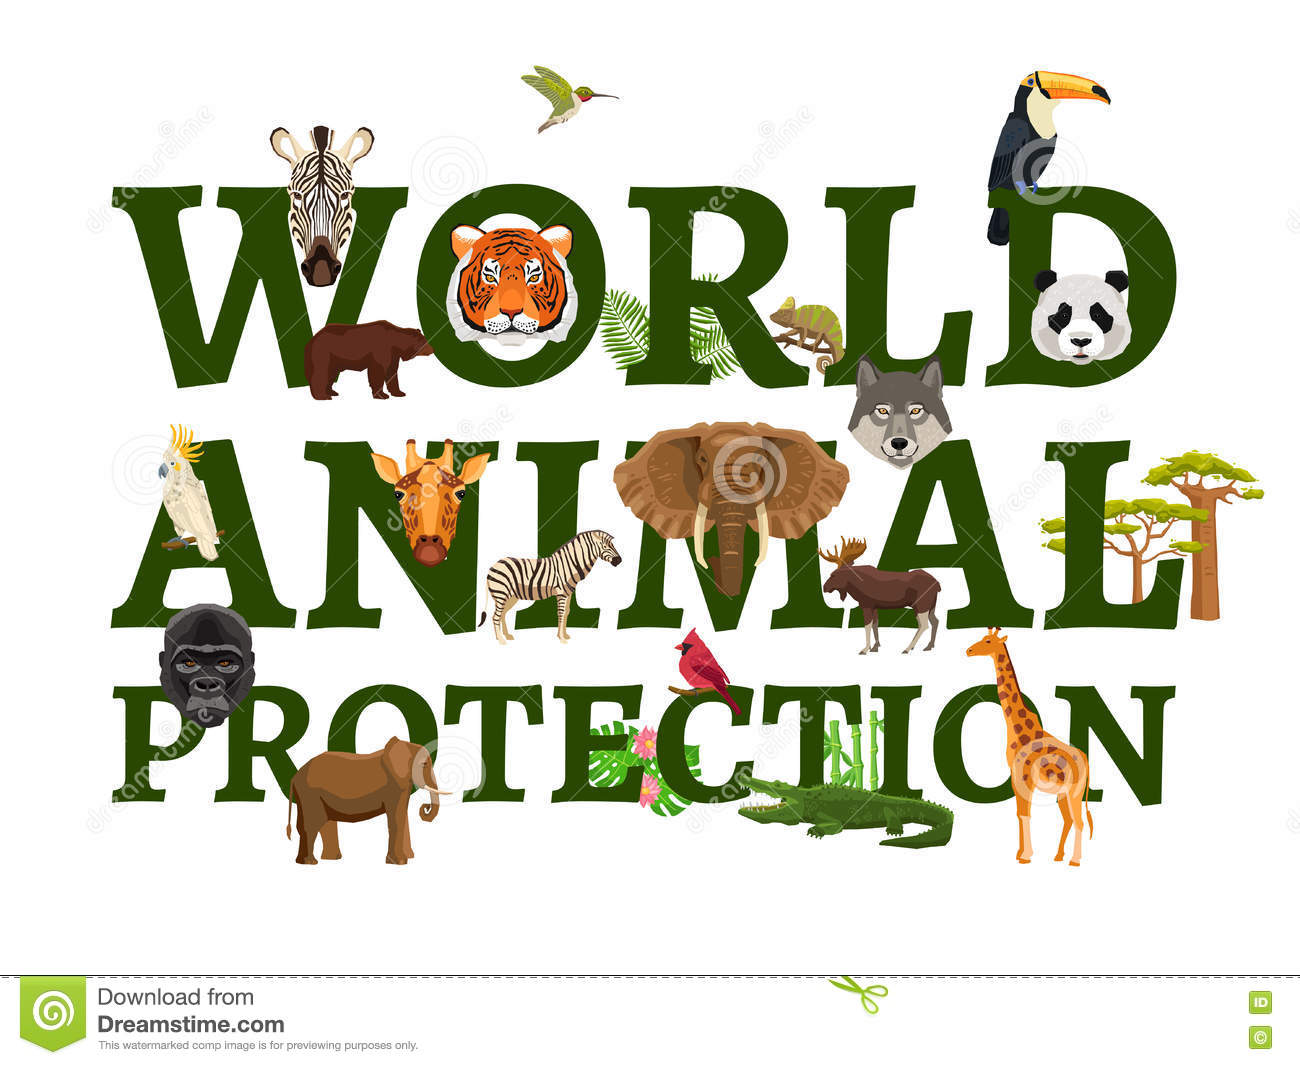 animal protection 2018 texas coalition for animal protection website designed by produce  results a denton web design company sharethis copy and paste contact.